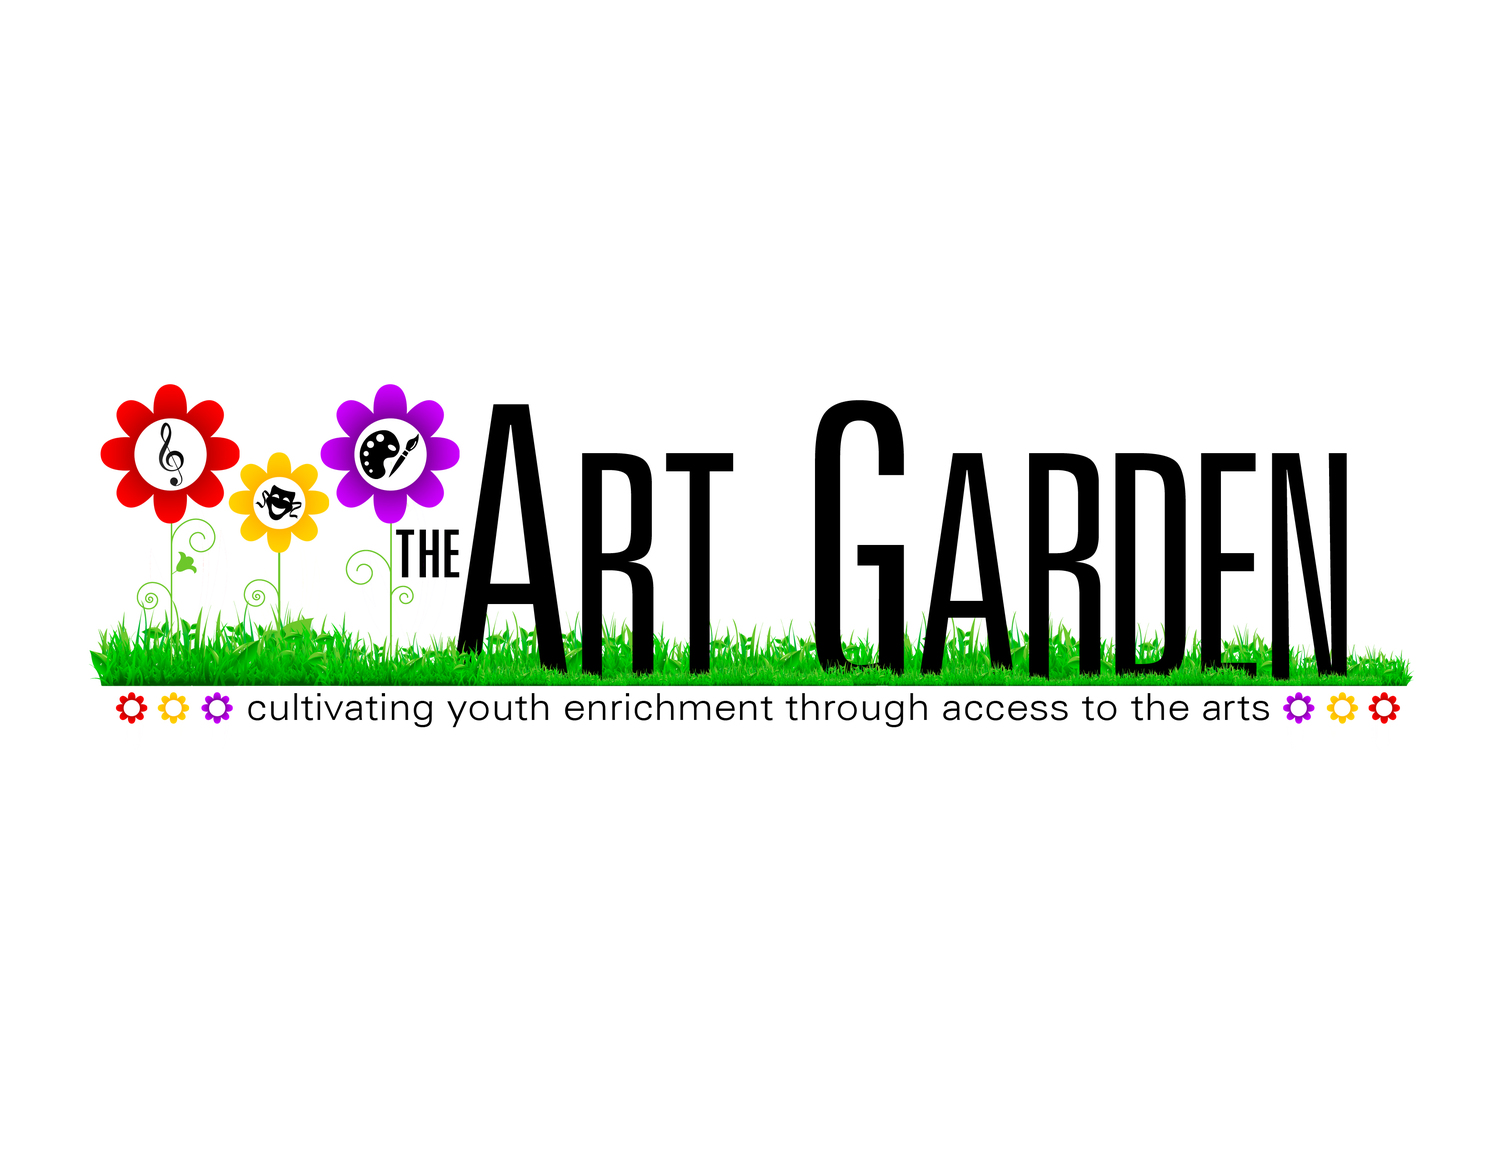 Welcome to the Art Garden